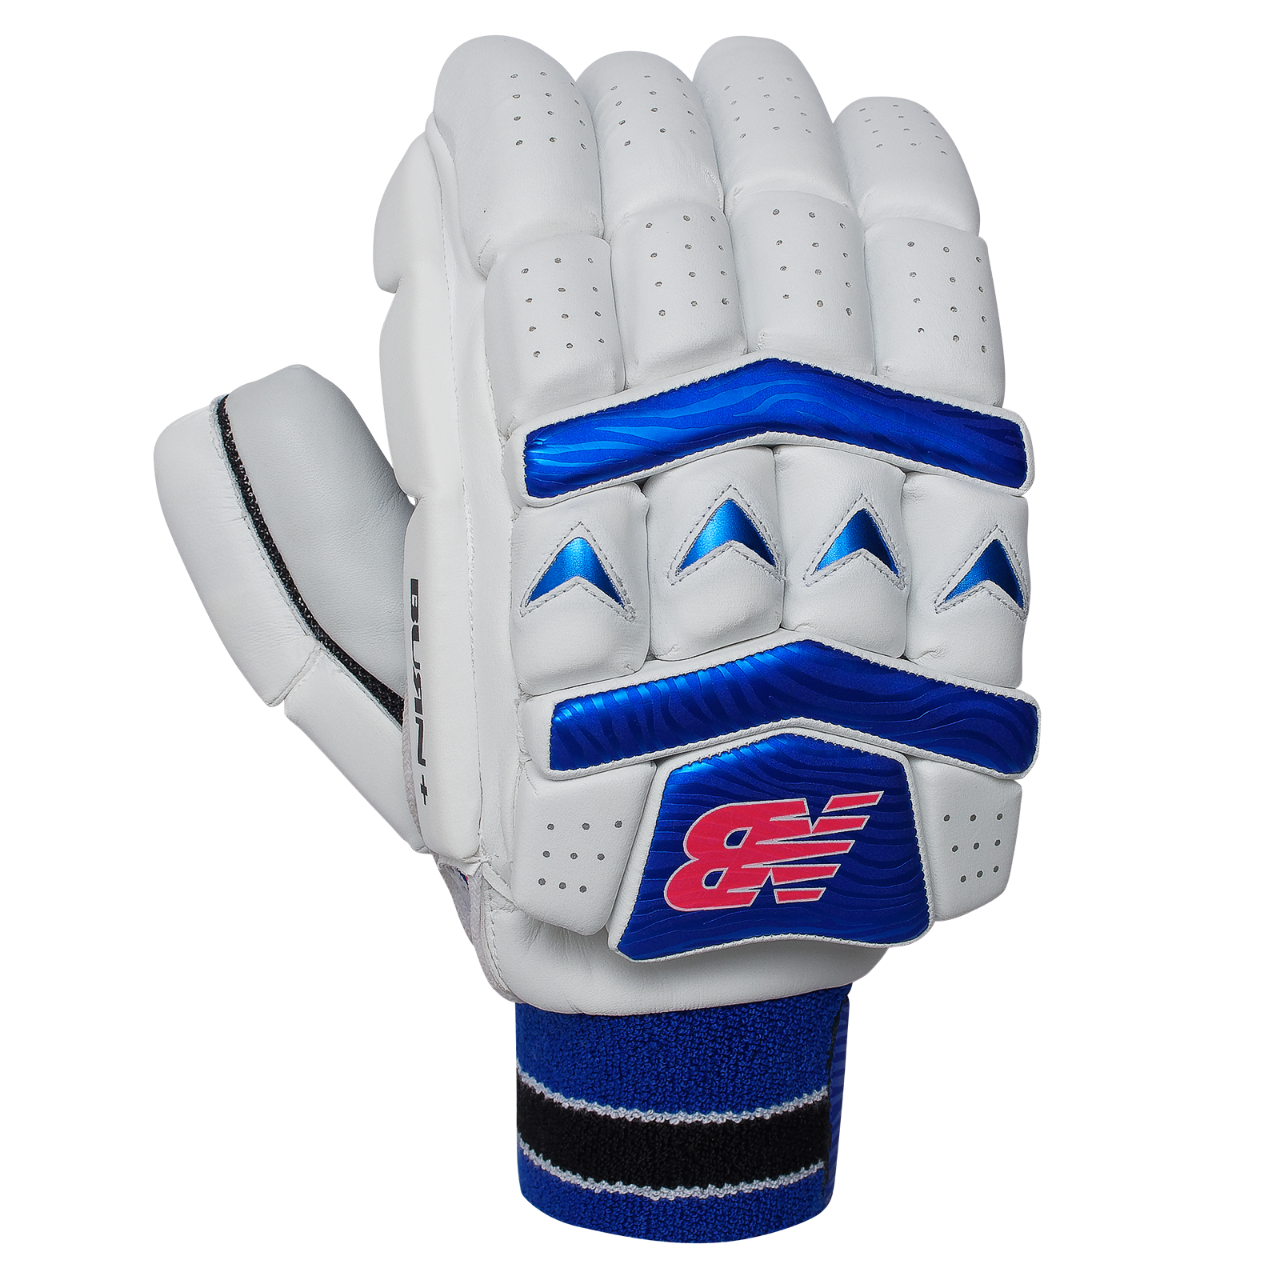 2021 New Balance Burn Junior Batting Gloves